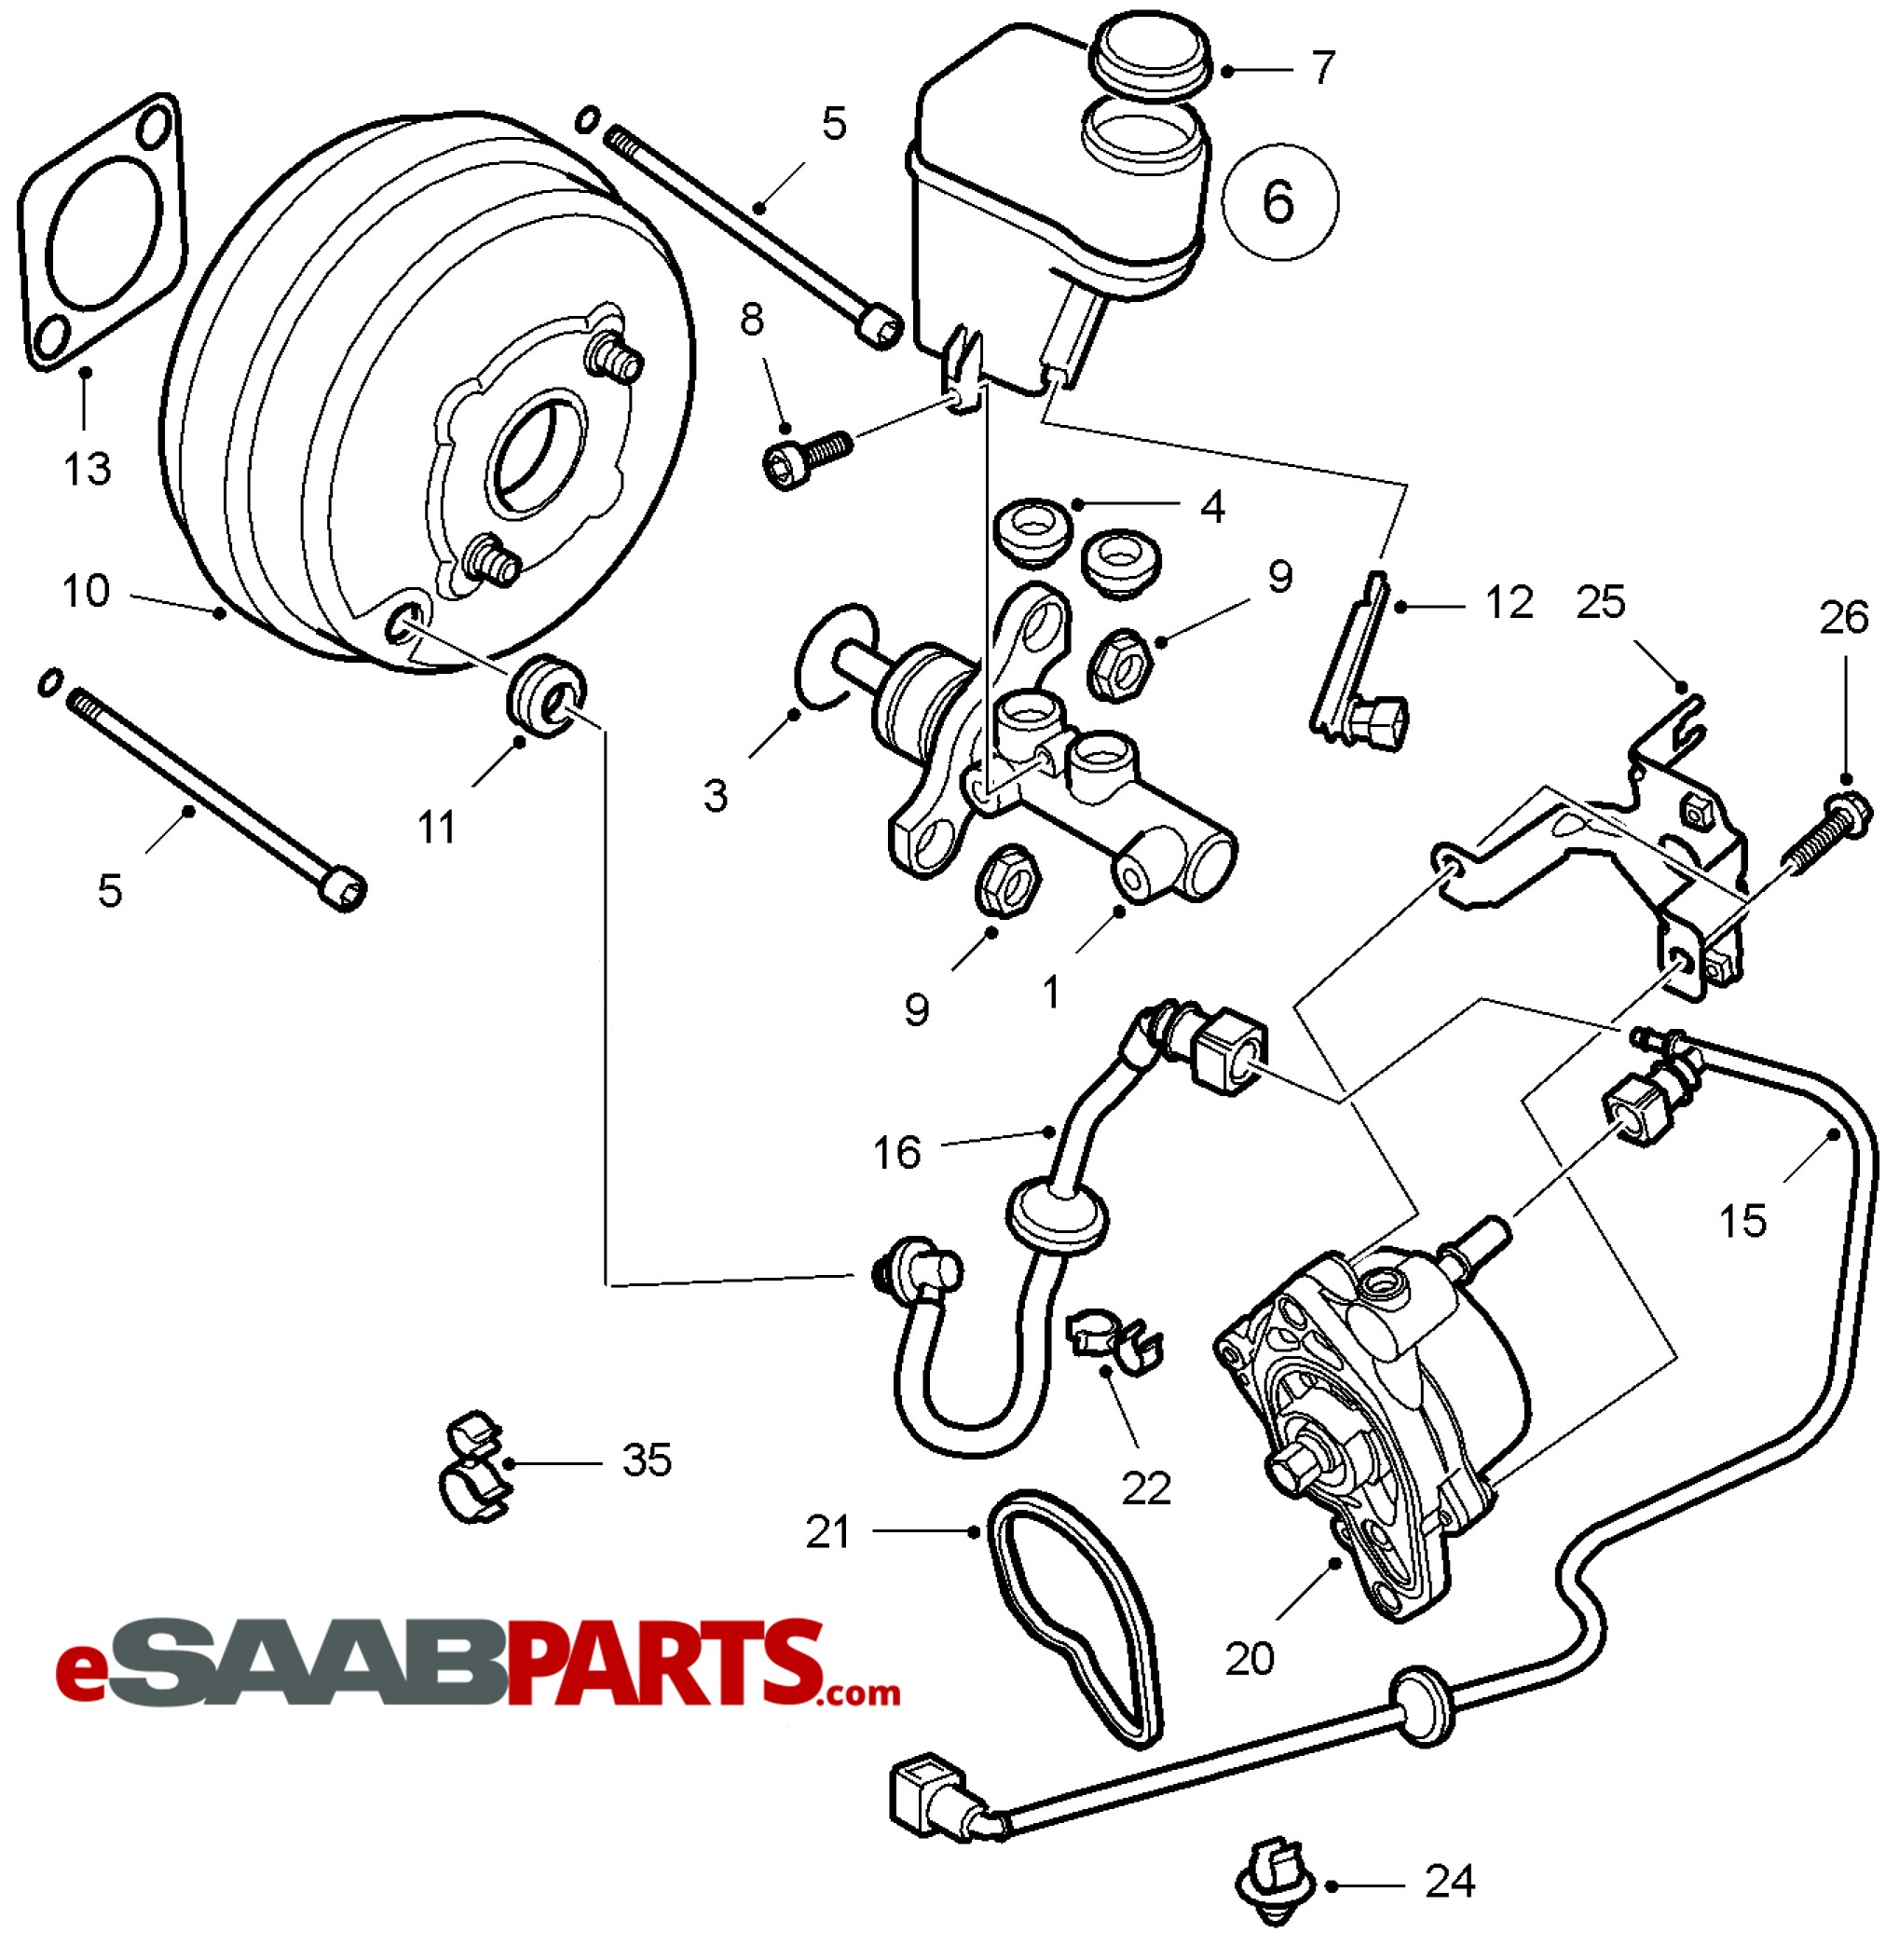 Saab 9 3 Engine Partment Diagram Saab 2.0T 9 3 Specs